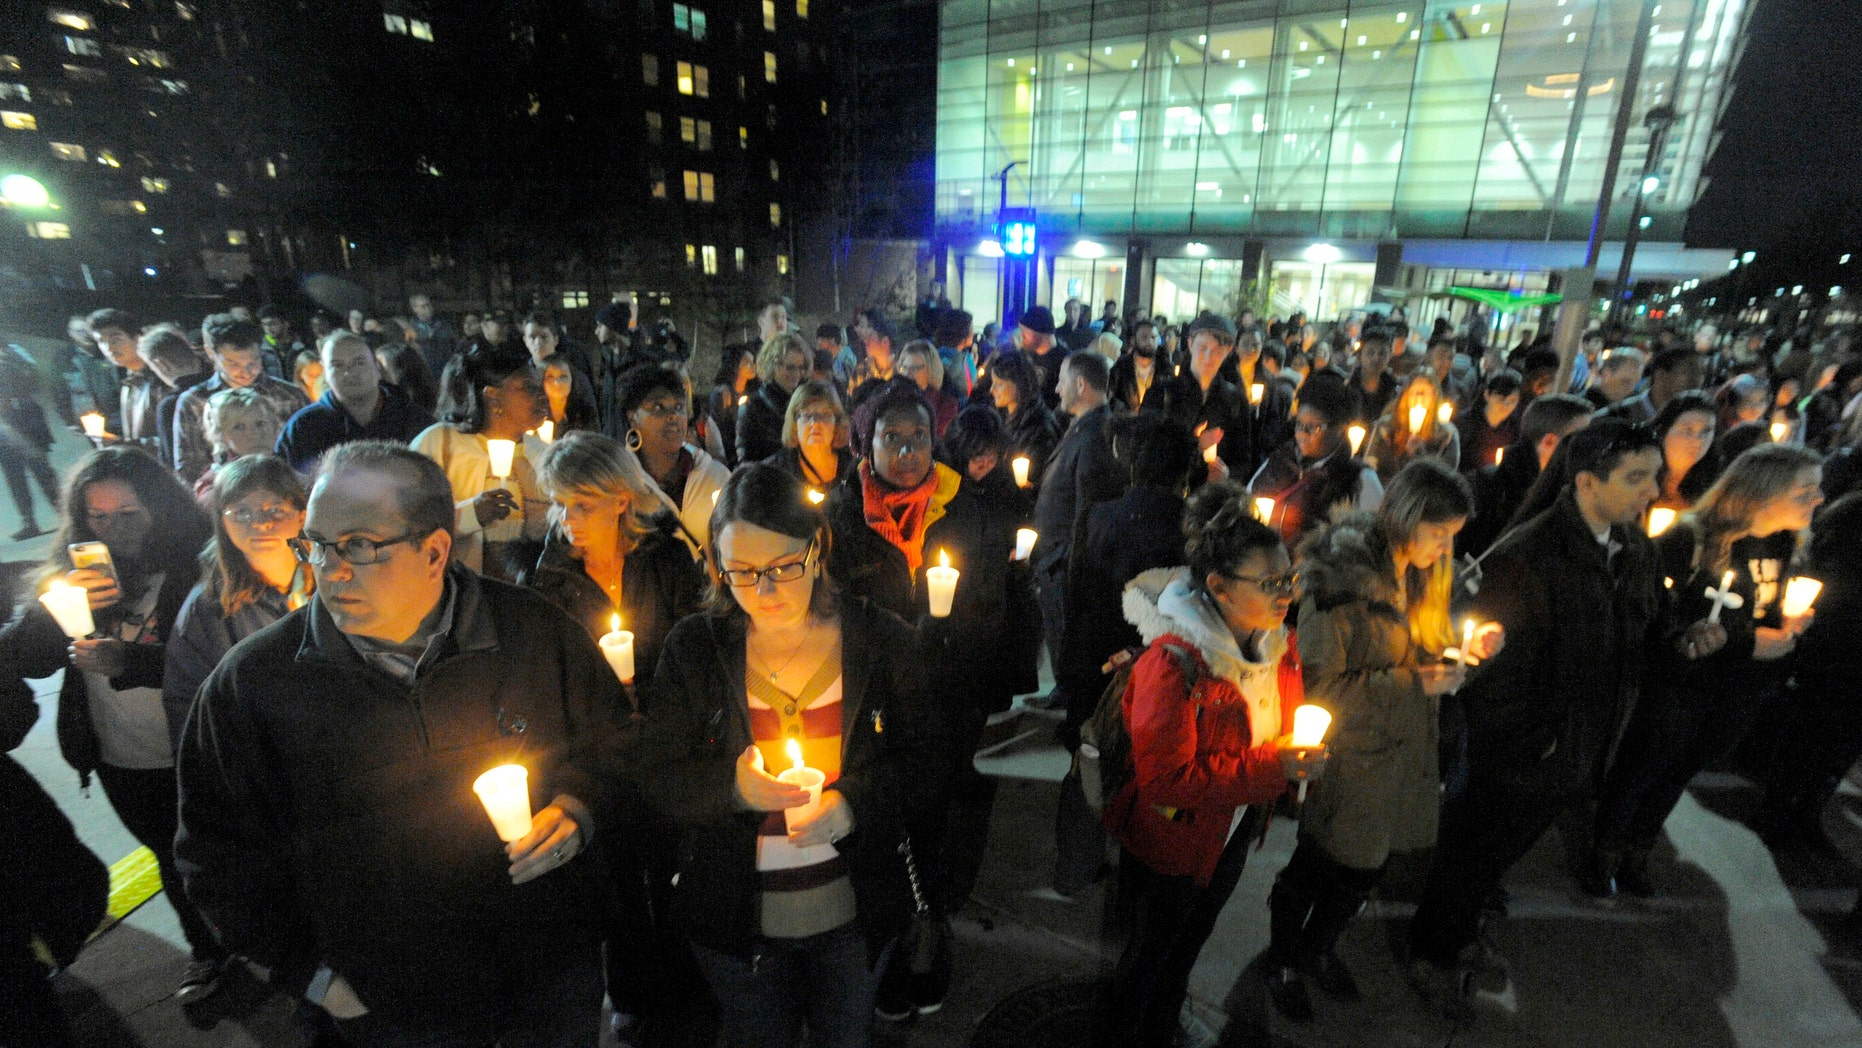 A large group gathers during a candlelight vigil on the campus of Wayne State University for Wayne State University campus police officer Collin Rose, Tuesday, Nov. 29, 2016, in Detroit. Rose was shot as he tried to arrest DeAngelo Davis, who was arraigned Friday on murder and gun charges. Rose died last Wednesday at a hospital. (Steve Perez/Detroit News via AP)